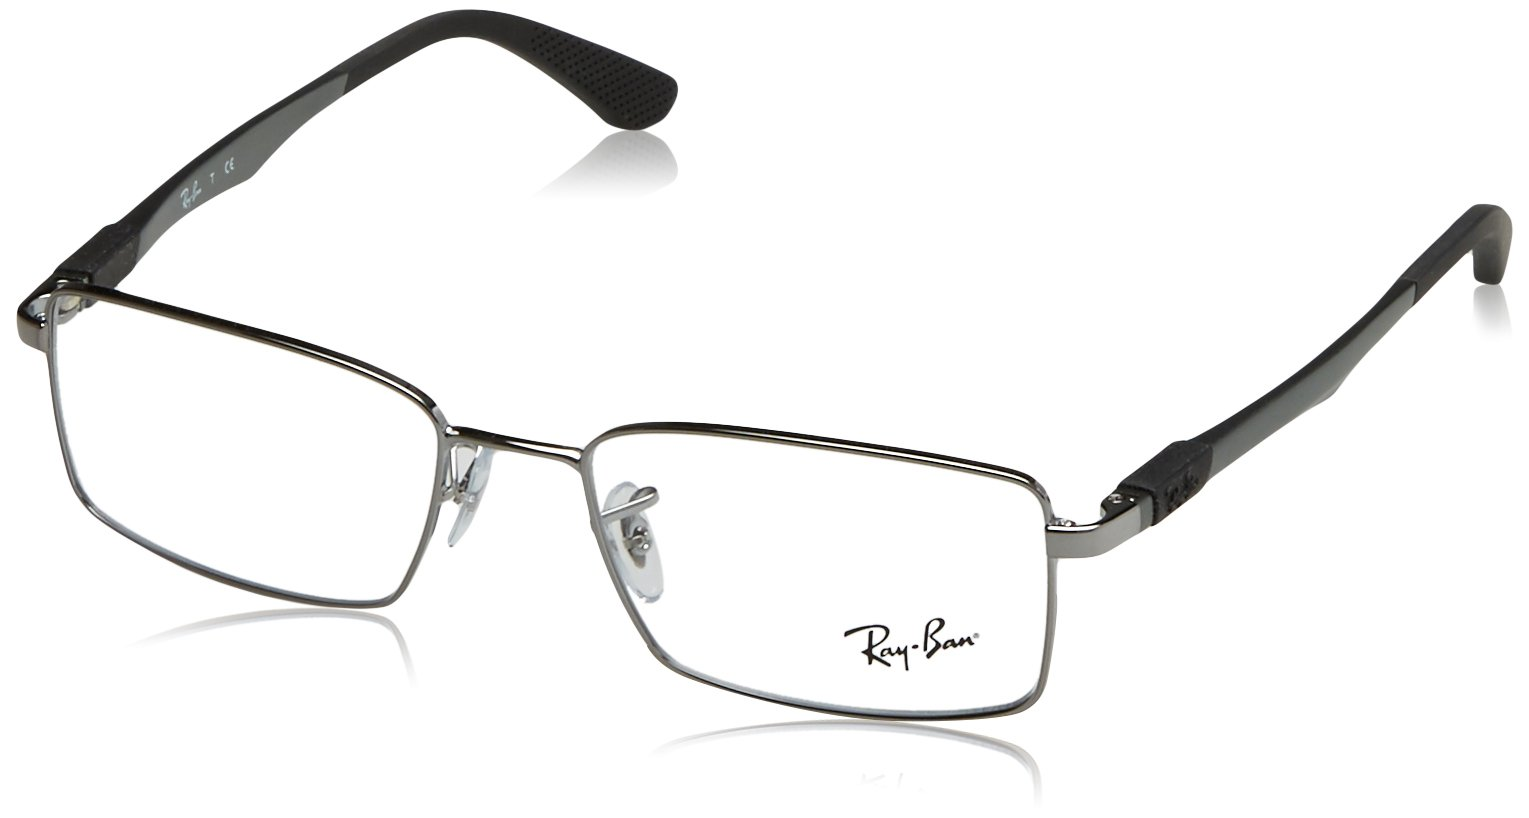 Ray-Ban Men's RX6275 Eyeglasses Gunmetal 52mm by Ray-Ban